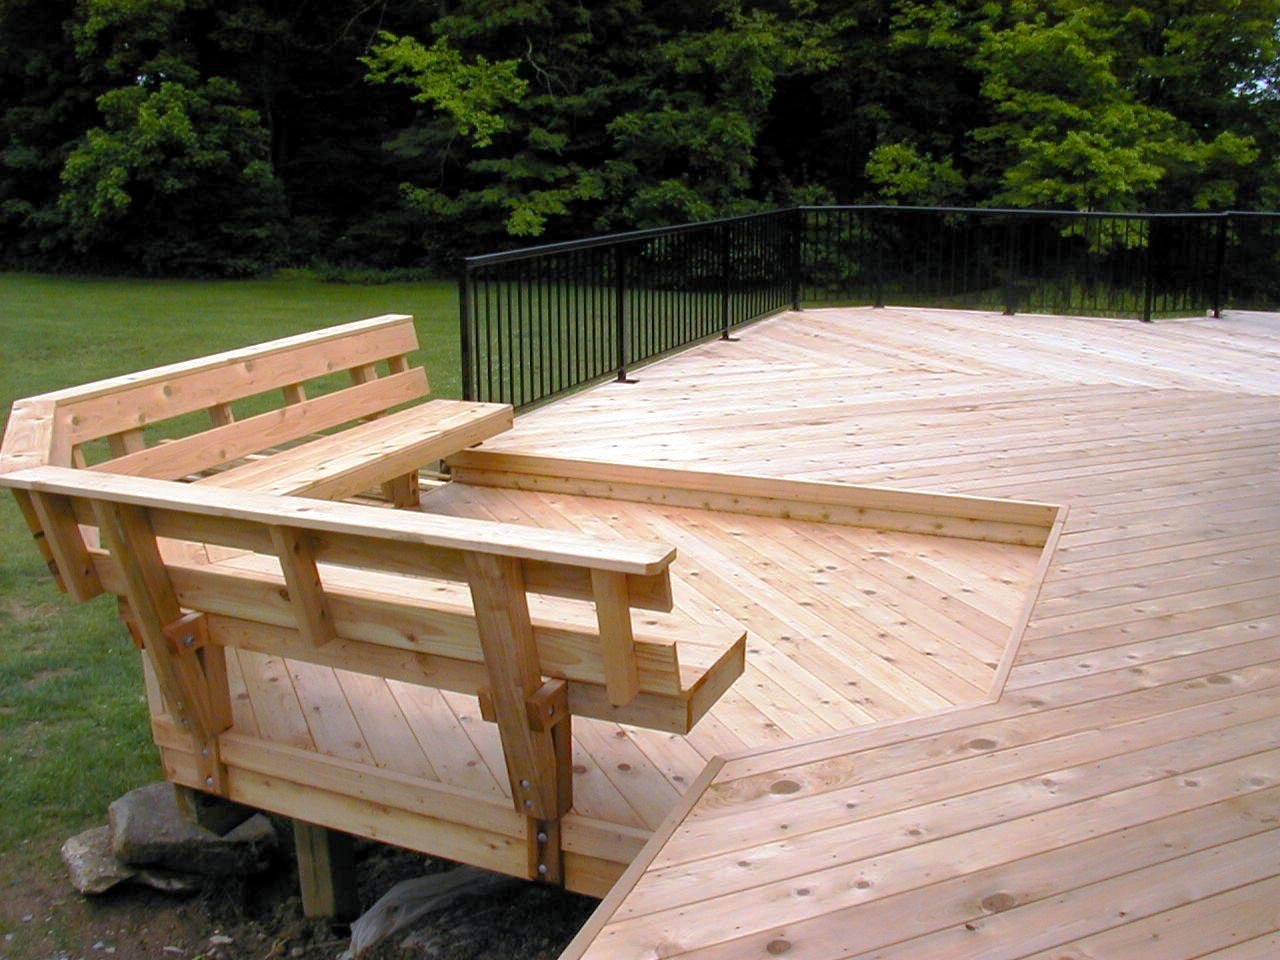 Archadeck of raleigh durham the greater triangle answers 10 top below is a list of answers to the top questions raleigh area deck homeowners have about weatherproofing outdoor living structures preparation is the key to baanklon Gallery